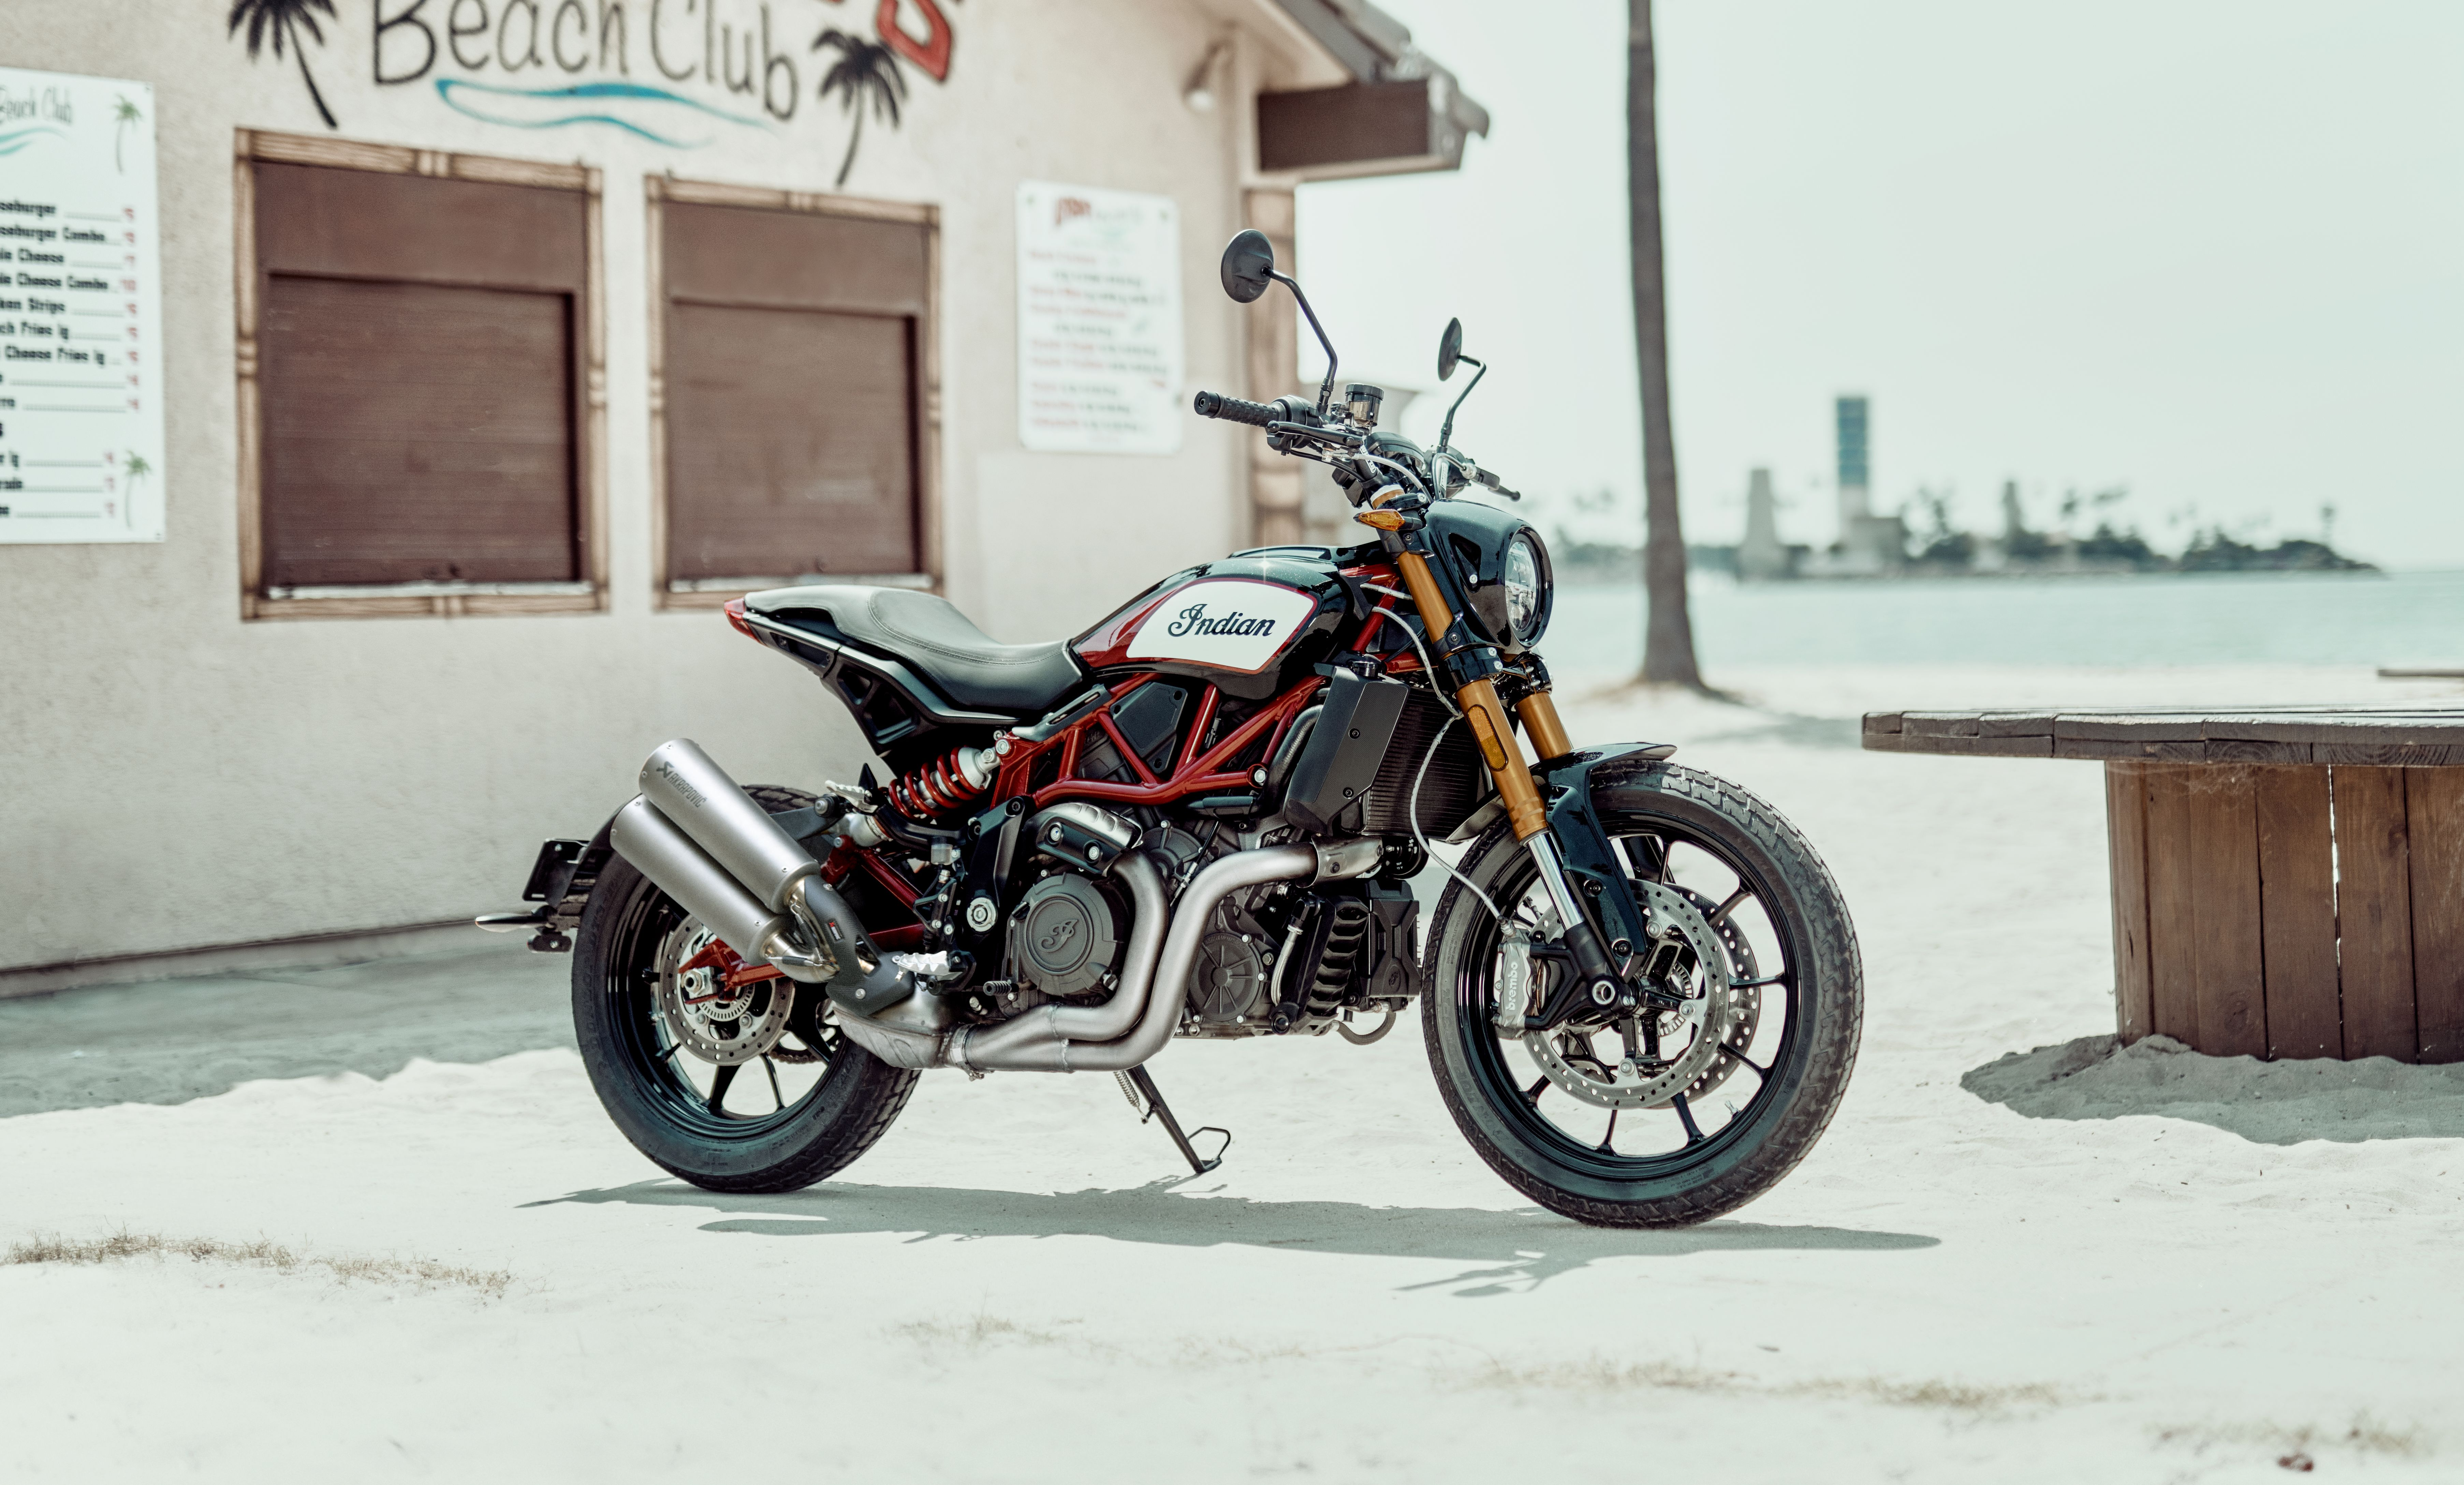 2019 Indian FTR 1200 S Race Replica now comes with Akrapovic